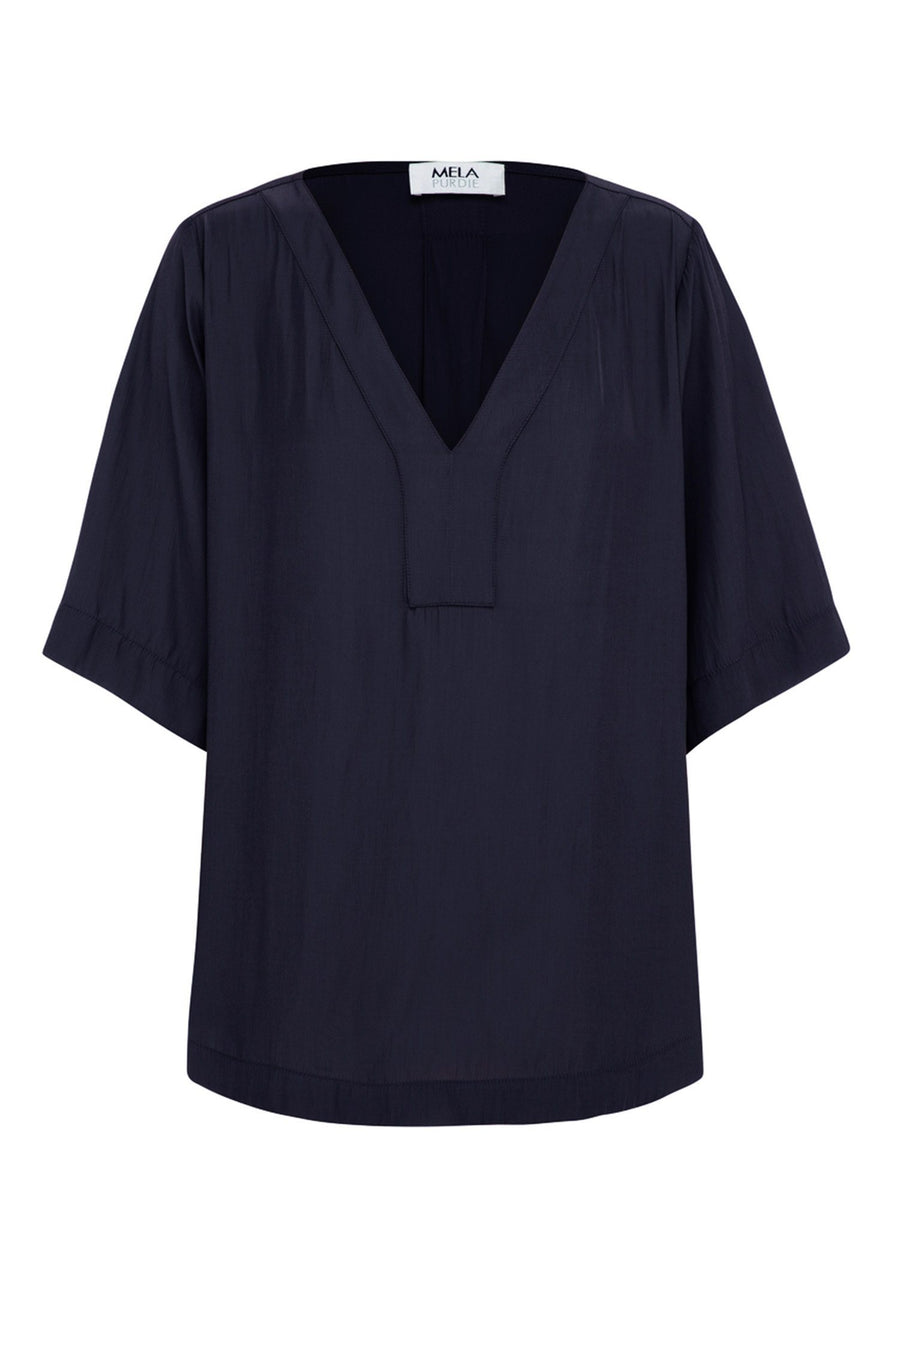 Tab Plaza T in French Navy